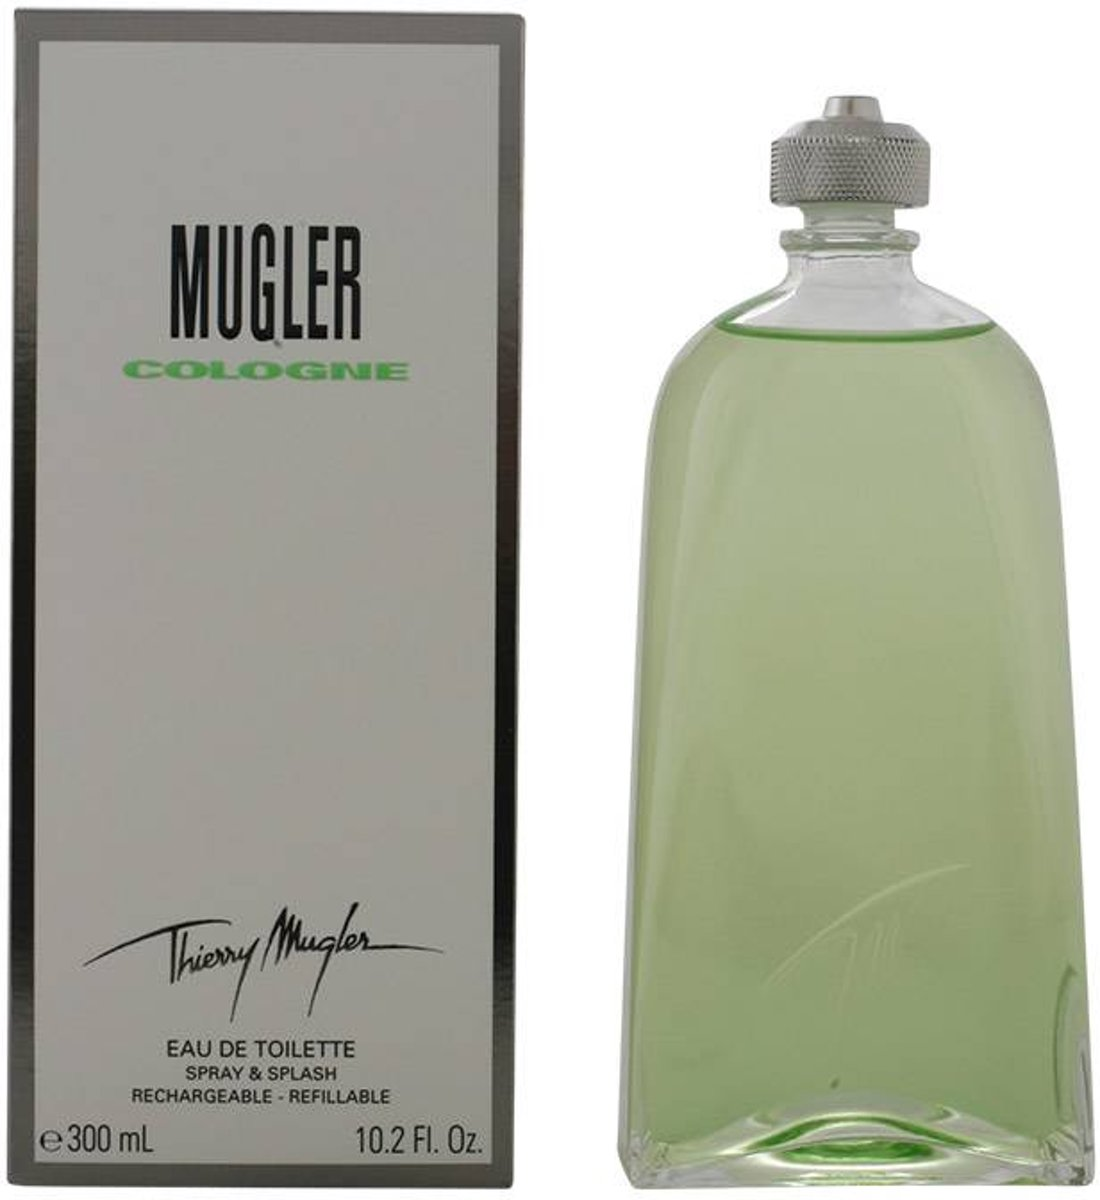 MUGLER COLOGNE edt verstuiver 300 ml